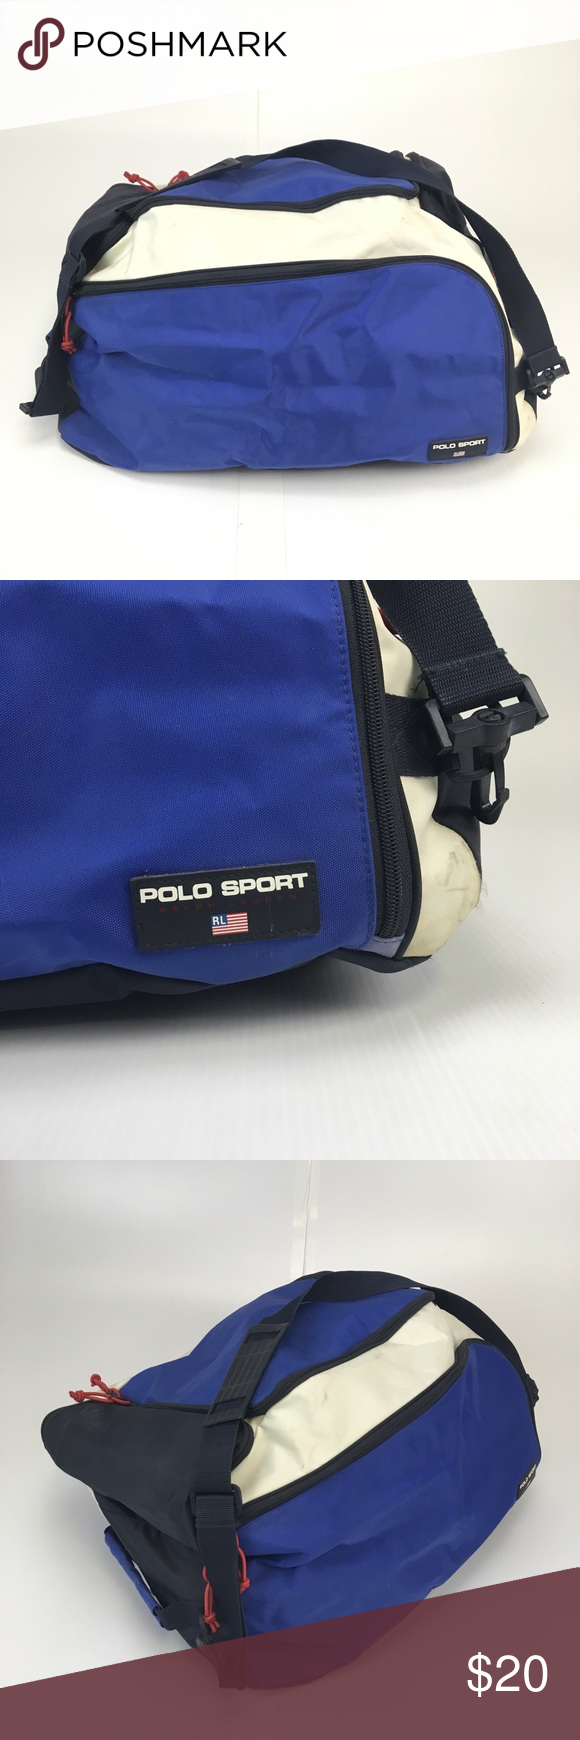 bf2d4cb7fb VTG Polo Sport Ralph Lauren Duffel Bag Vintage Polo Sport full size duffel  bag in good   useable condition. Always willing to do lower pricing on  bundle ...